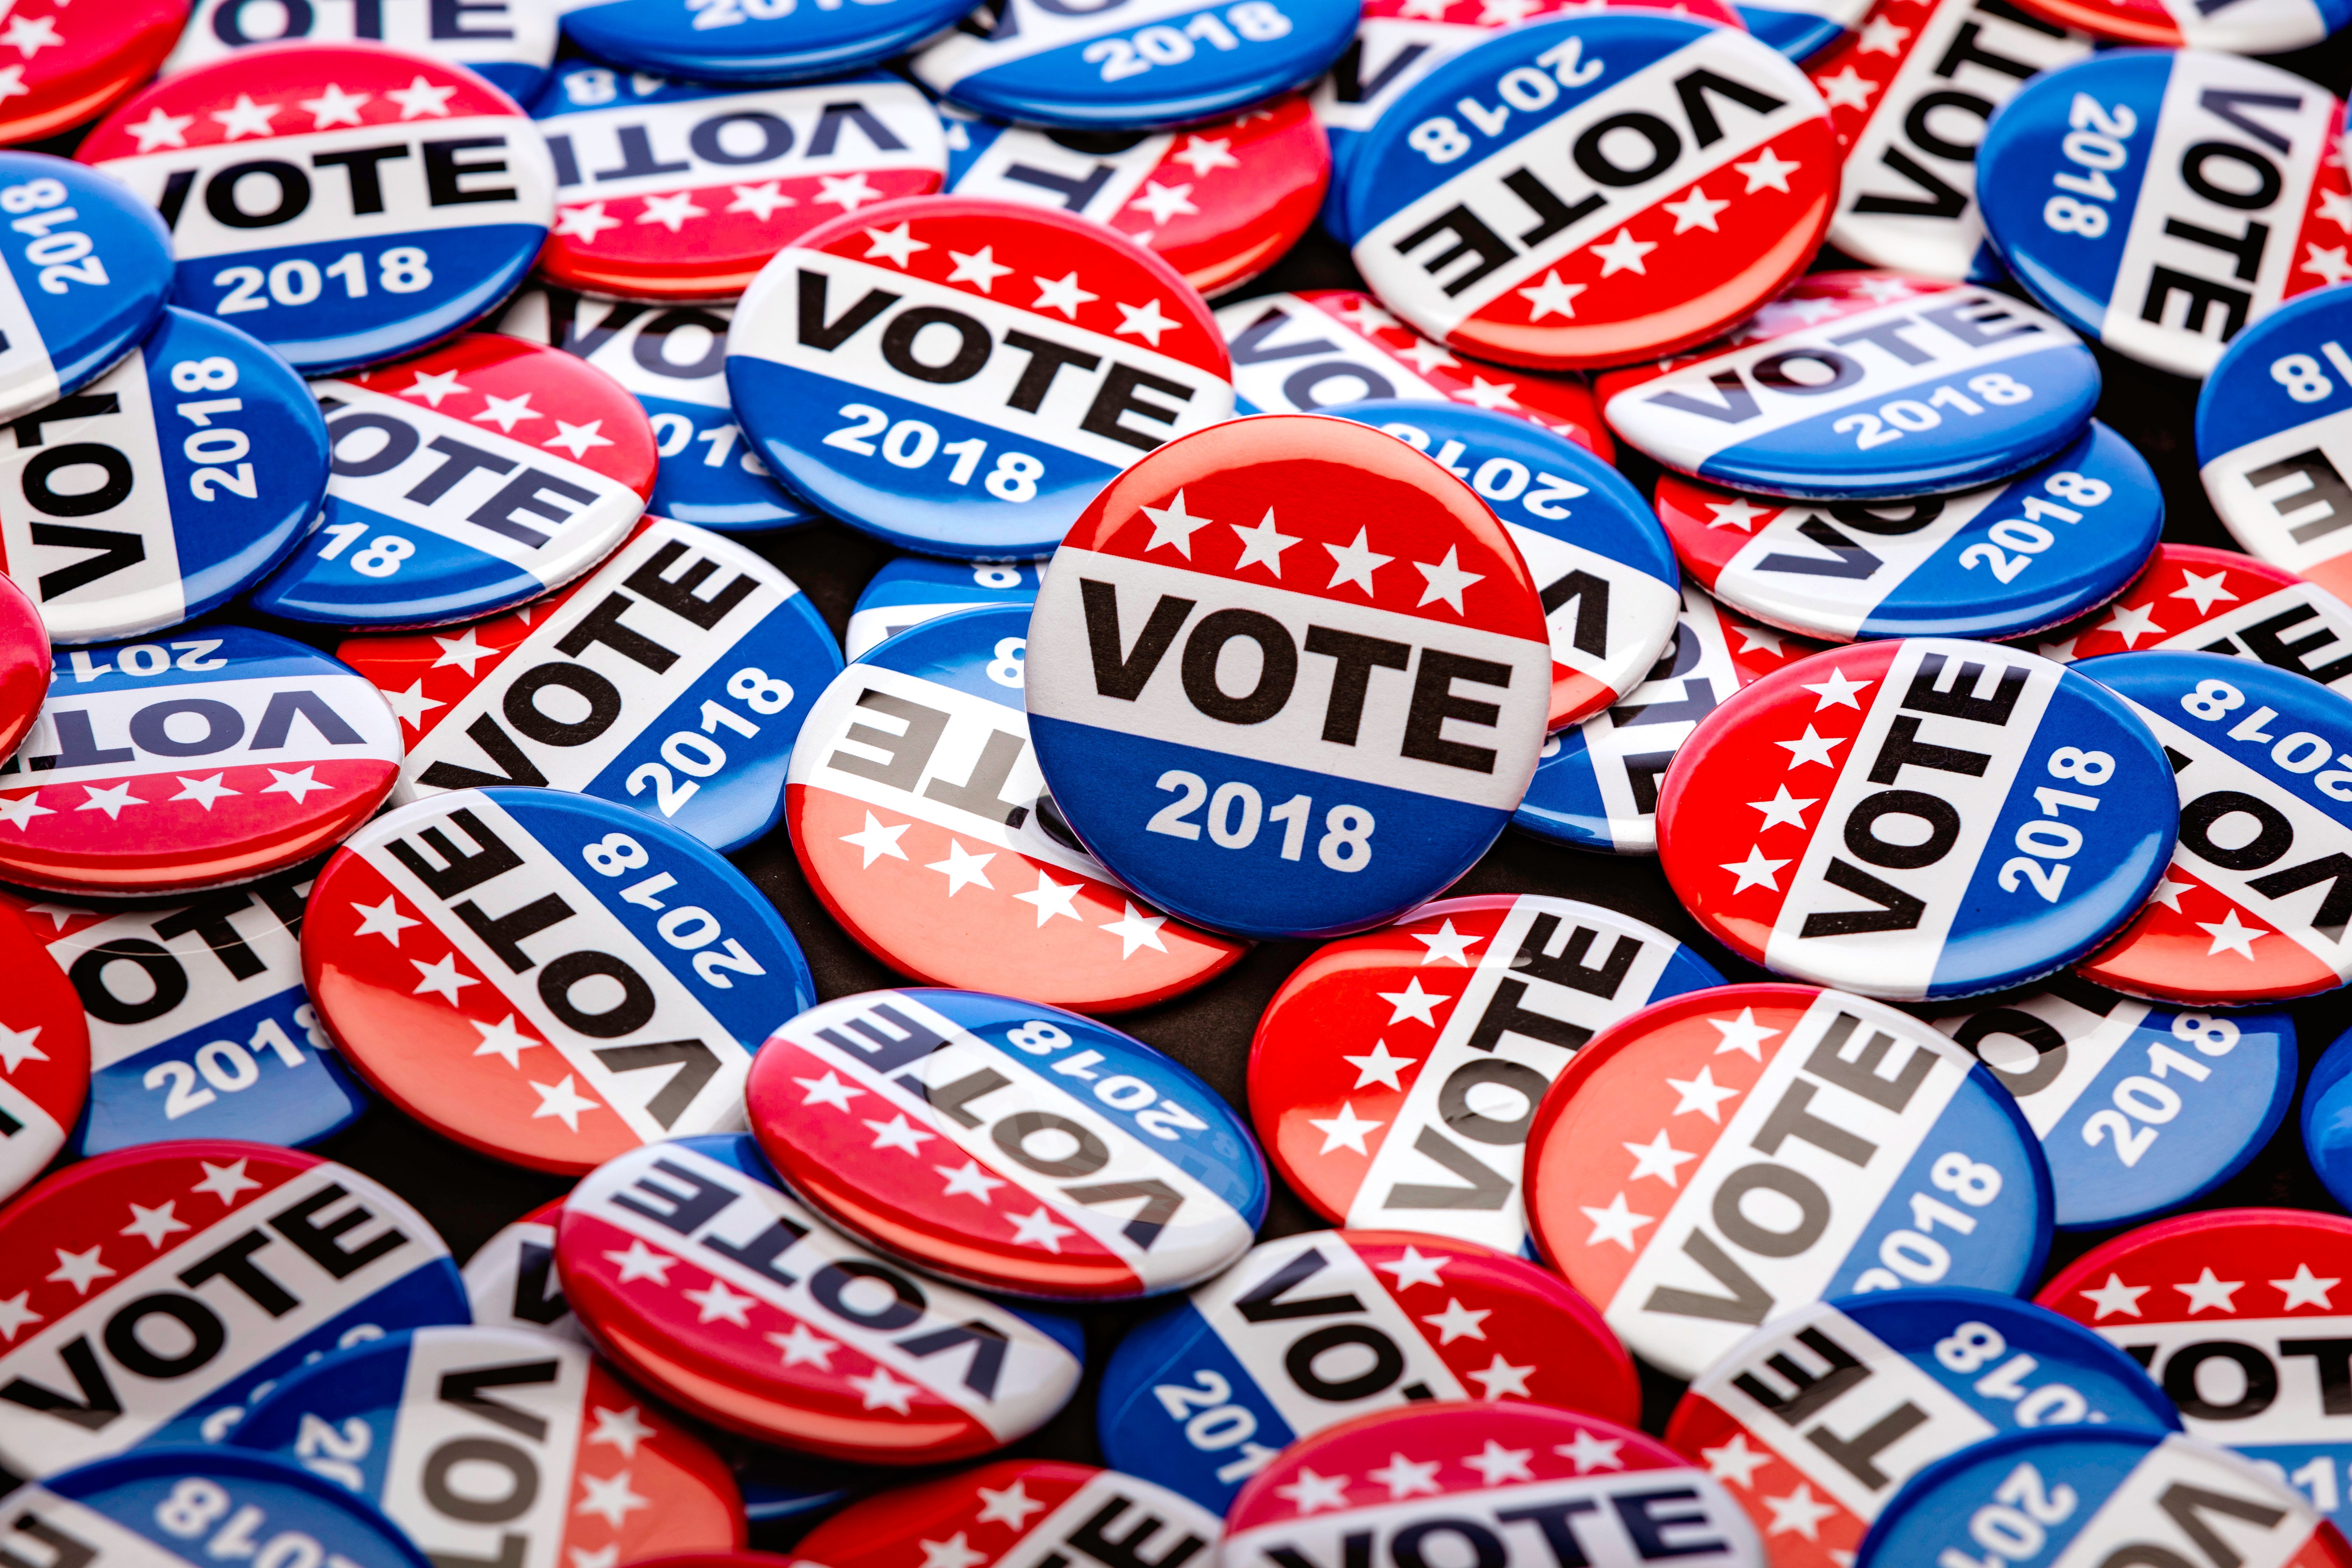 High quality stock photo of patriotic voting buttons for the mid term election, some with copy space on white or an American Flag.